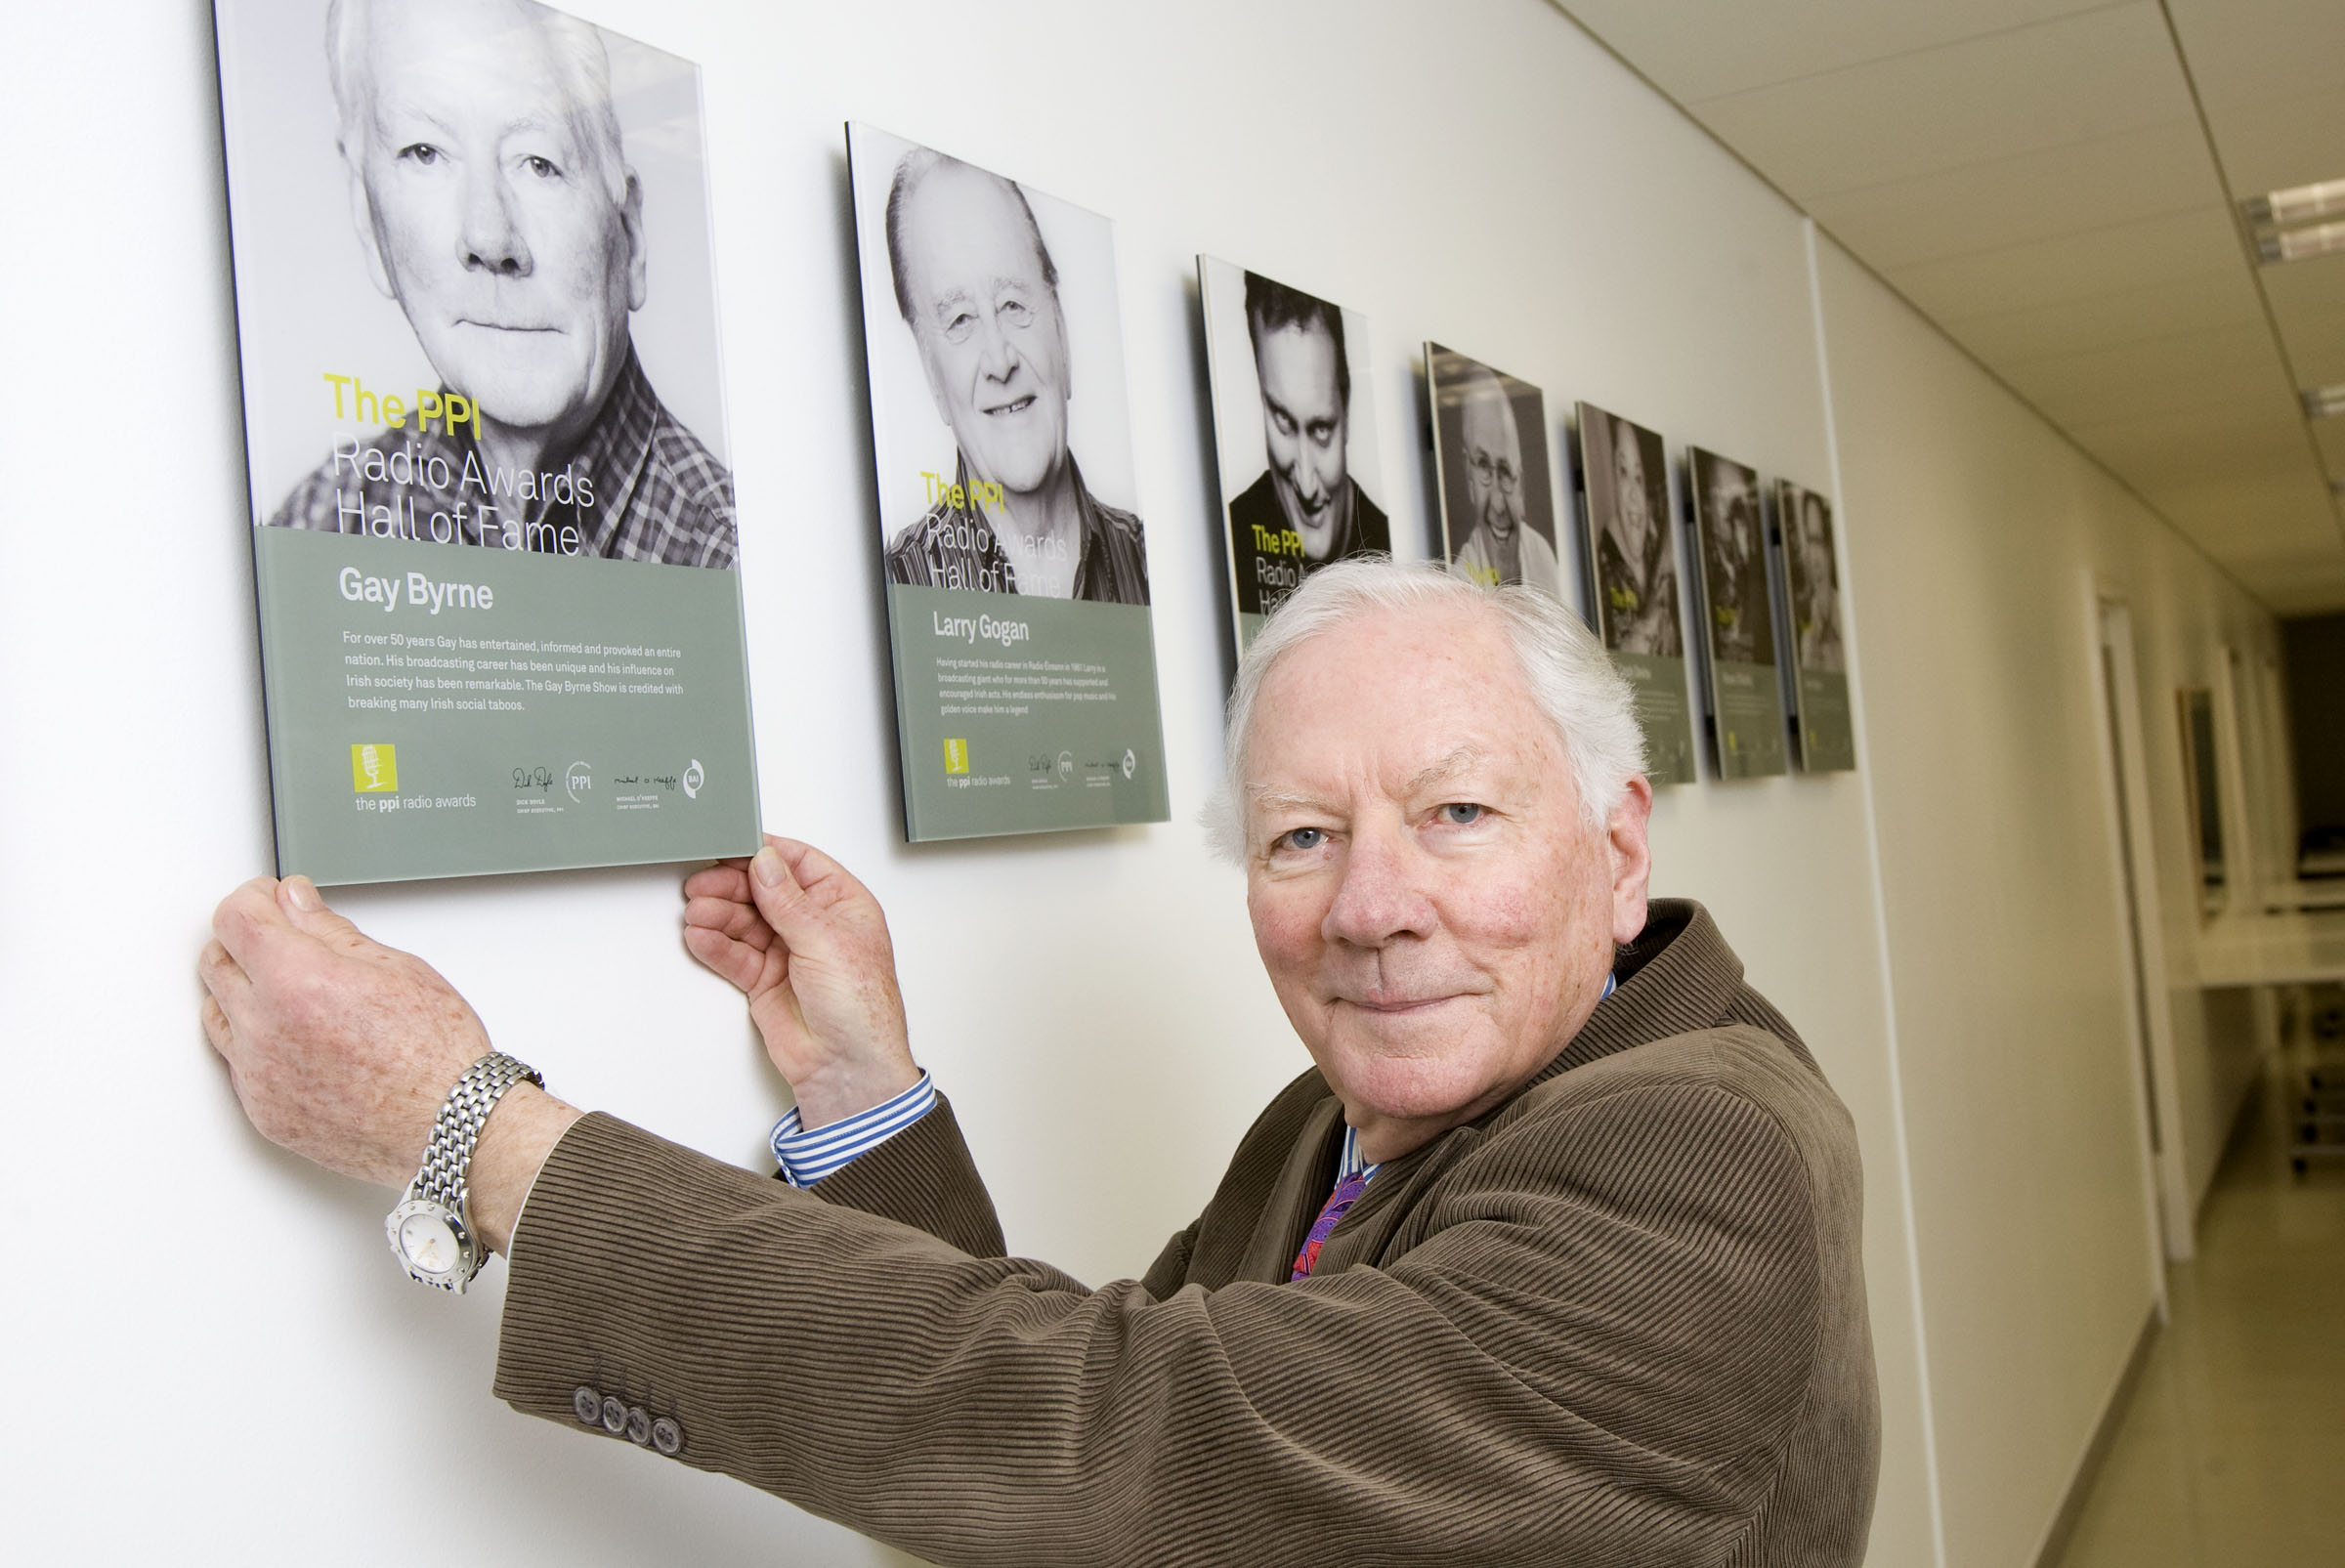 PPI/BAI Radio Hall of Fame launch by Iain White, Photographer, Dublin 16